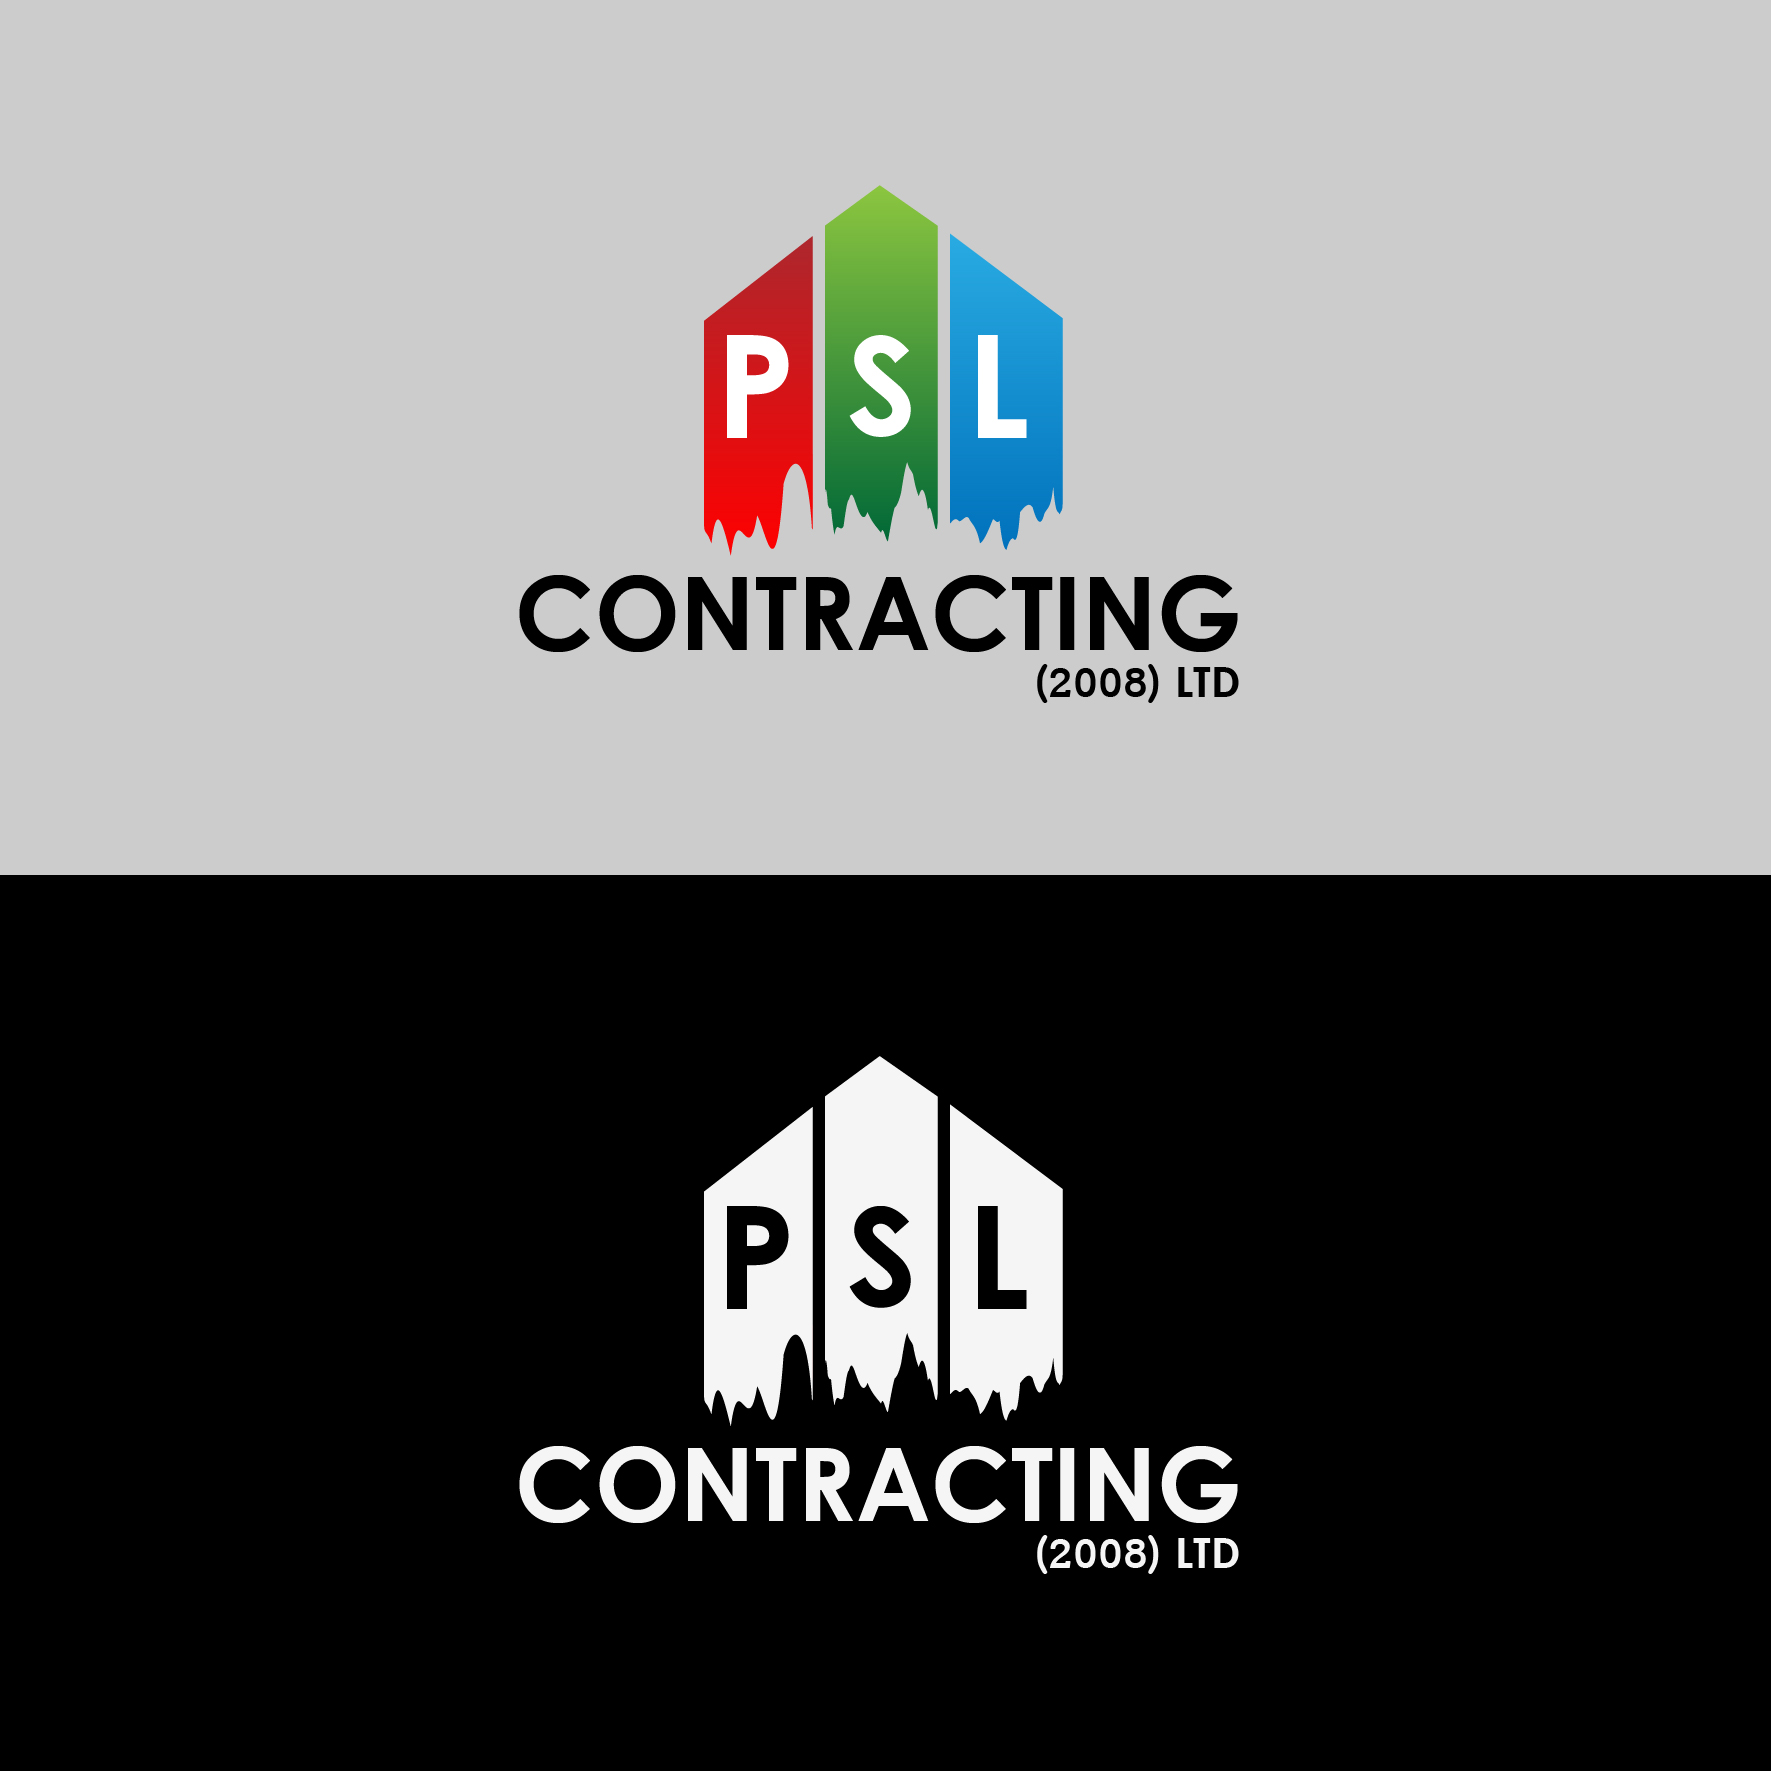 Logo Design by 3draw - Entry No. 3 in the Logo Design Contest PSL Contracting (2008) Ltd. Logo Design.